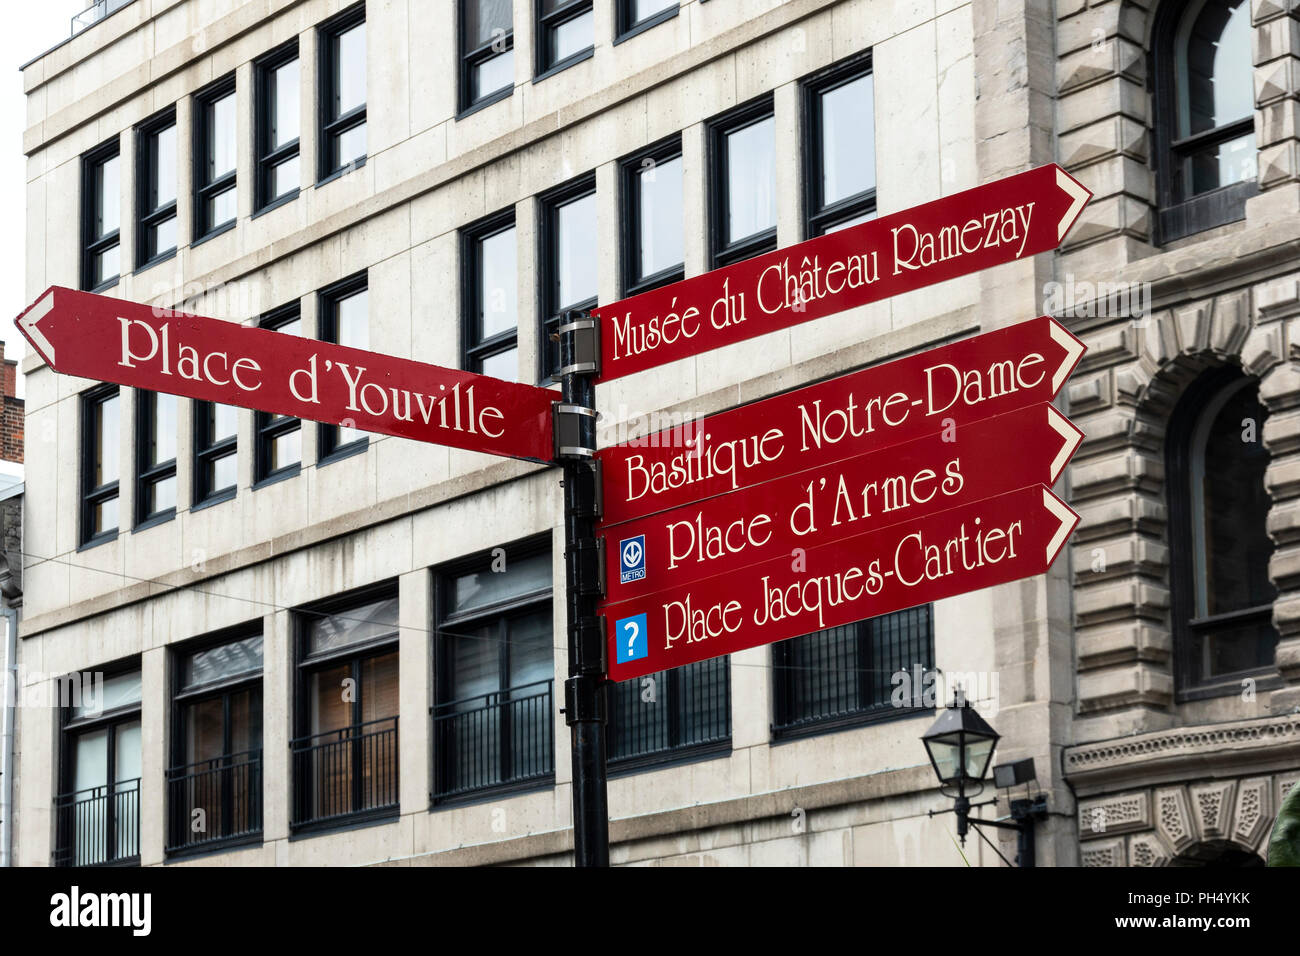 Directional street signs in Montreal, QC, Canada - Stock Image